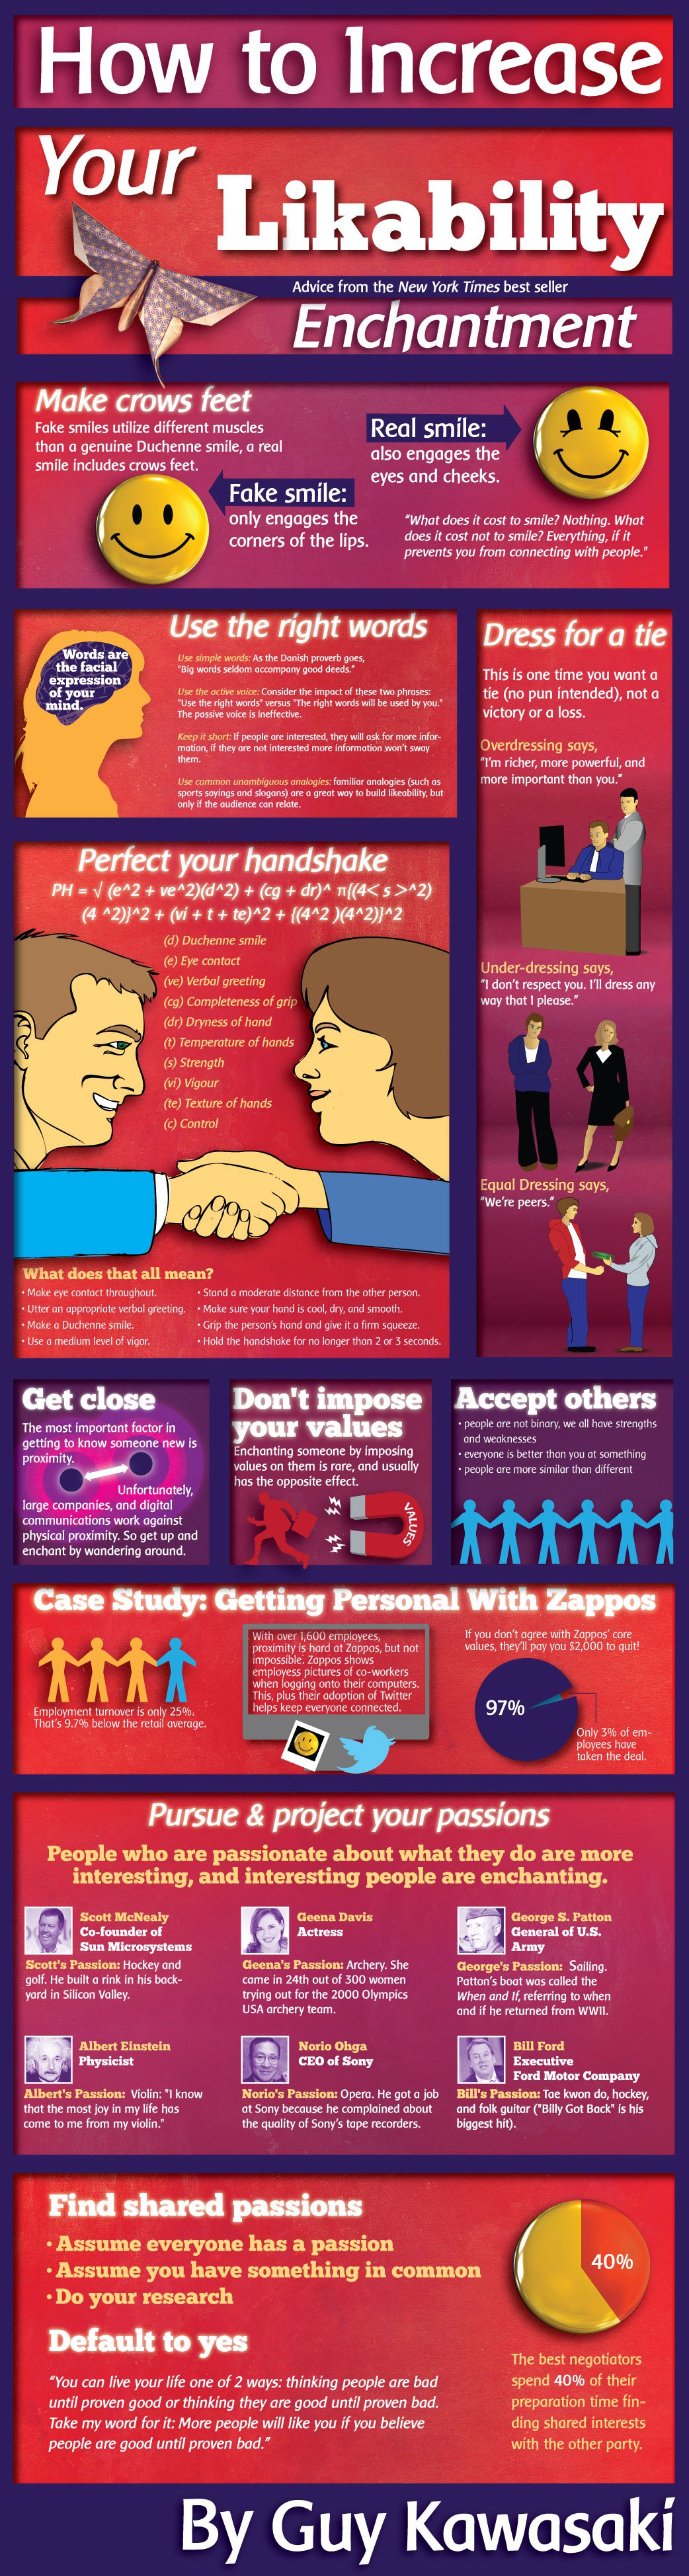 How To Increase Your Likability [Infographic]